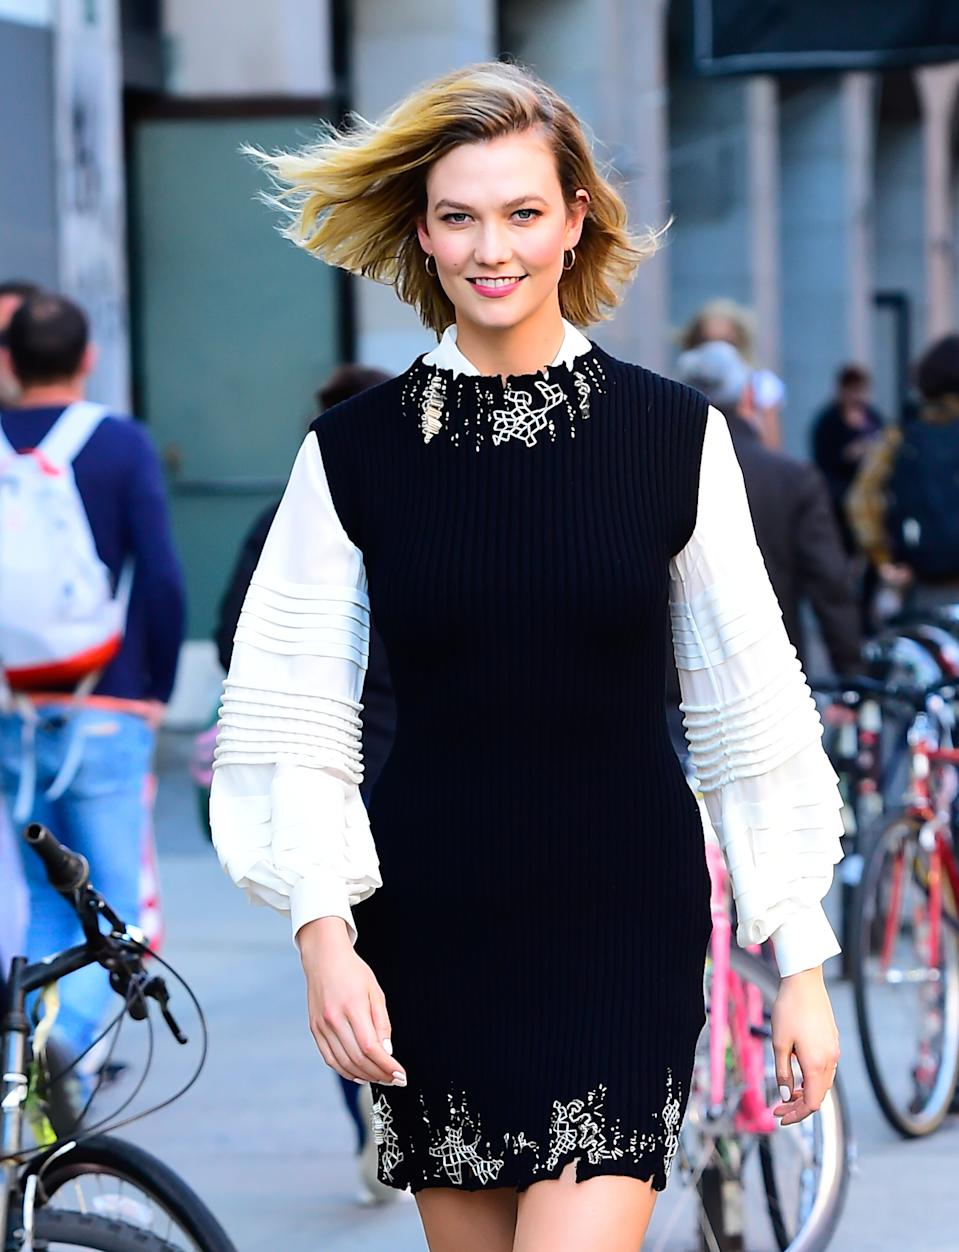 Model Karlie Kloss celebrated her 27th birthday by jumping off a yacht. (Photo: Getty Images)